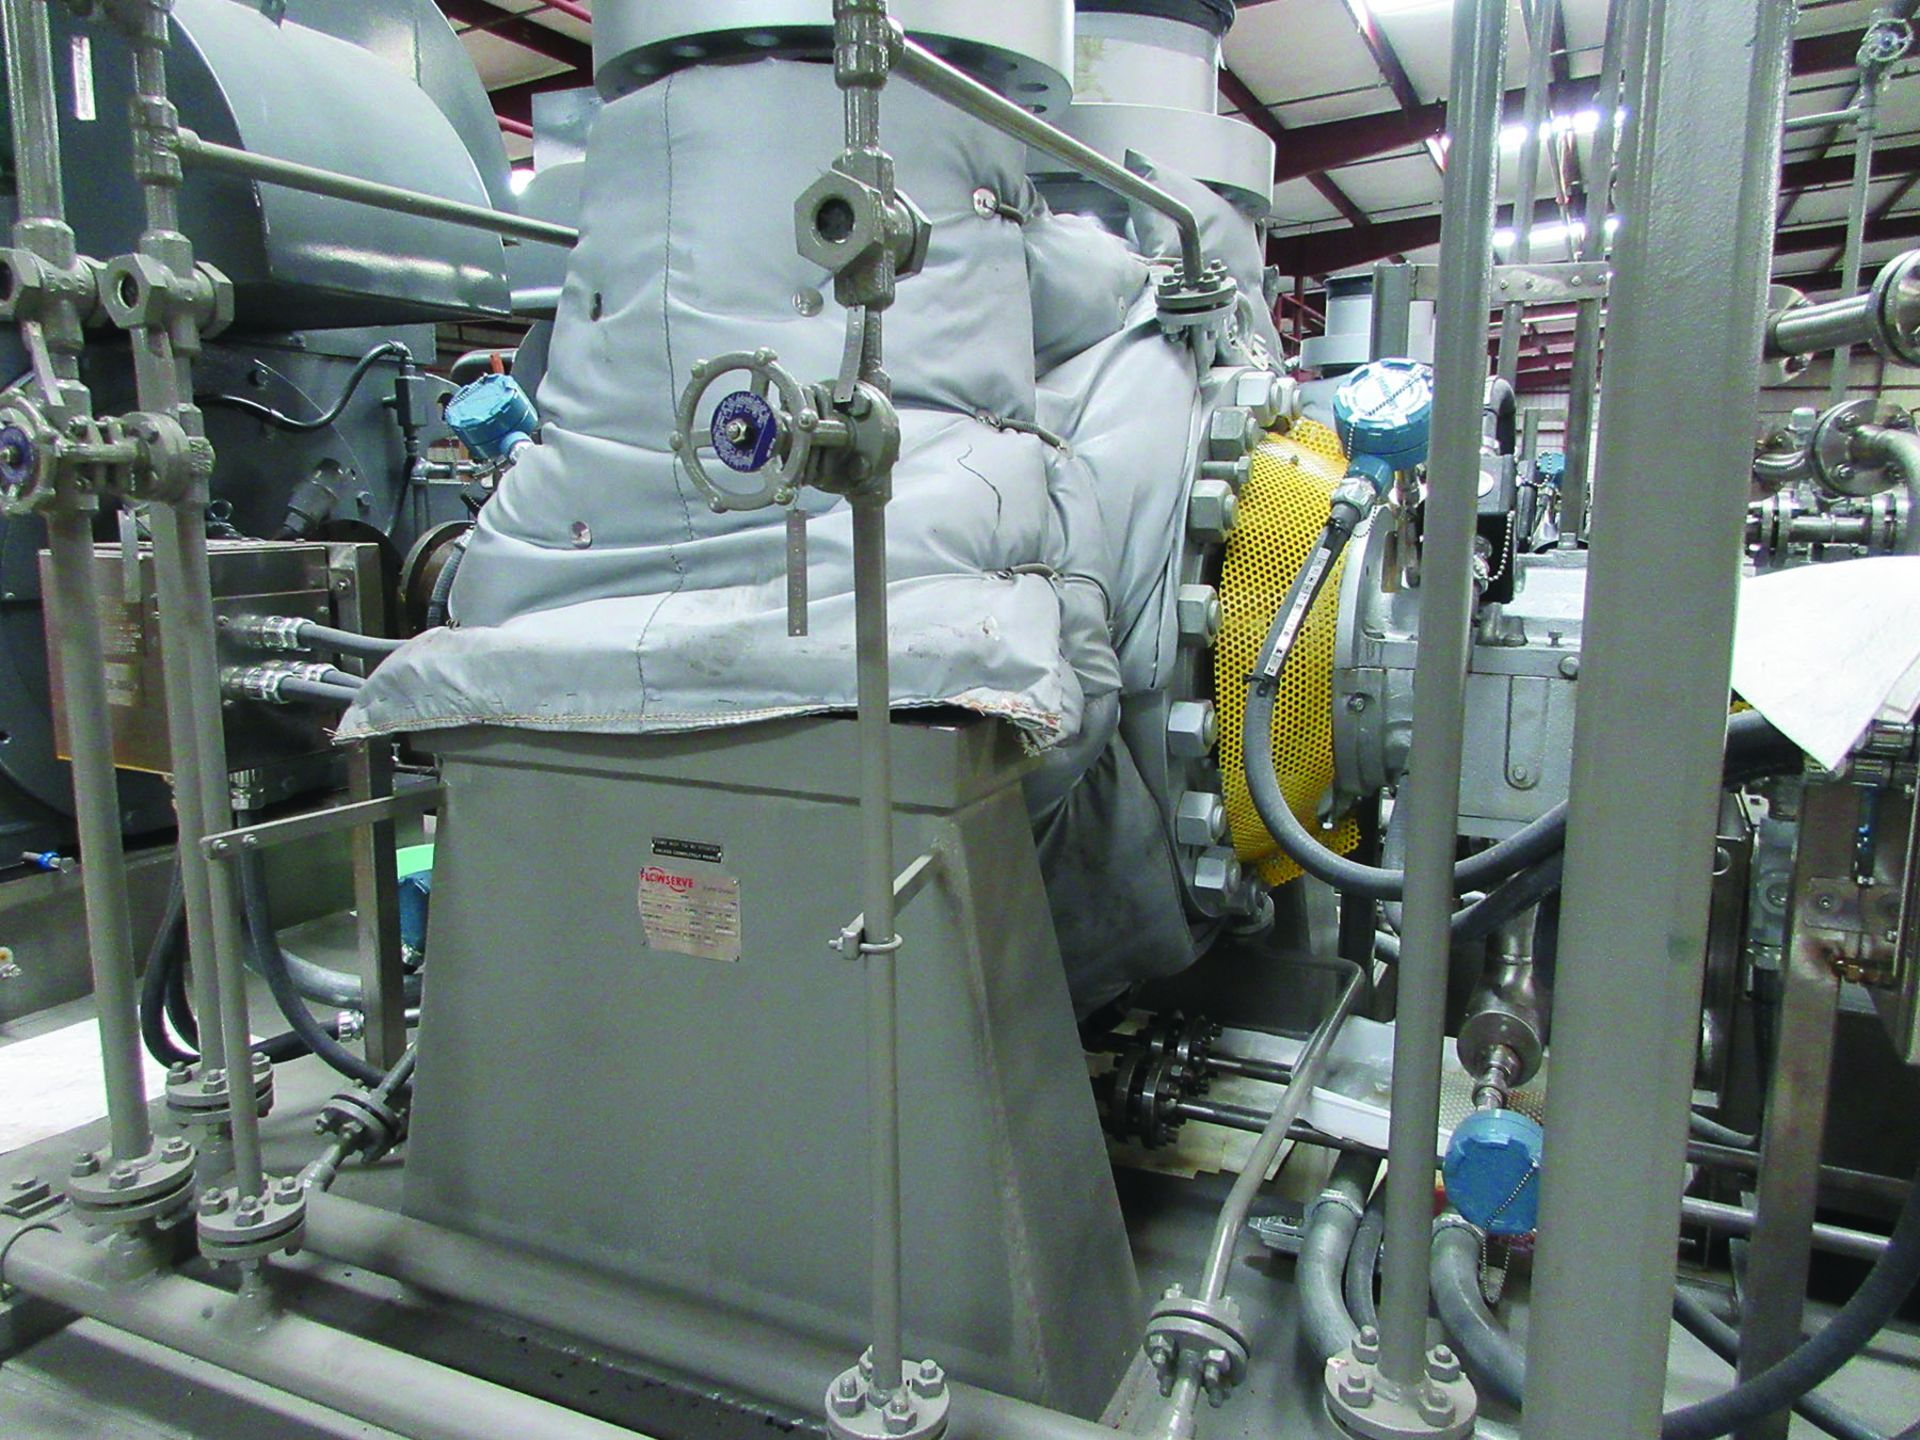 BOILER FEEDWATER BOOSTER PUMP SLED, GE 3,000 HP INDUCTION MOTOR 3585 RPM, 6600 VOLTS, 8313S FRAME, - Image 5 of 11